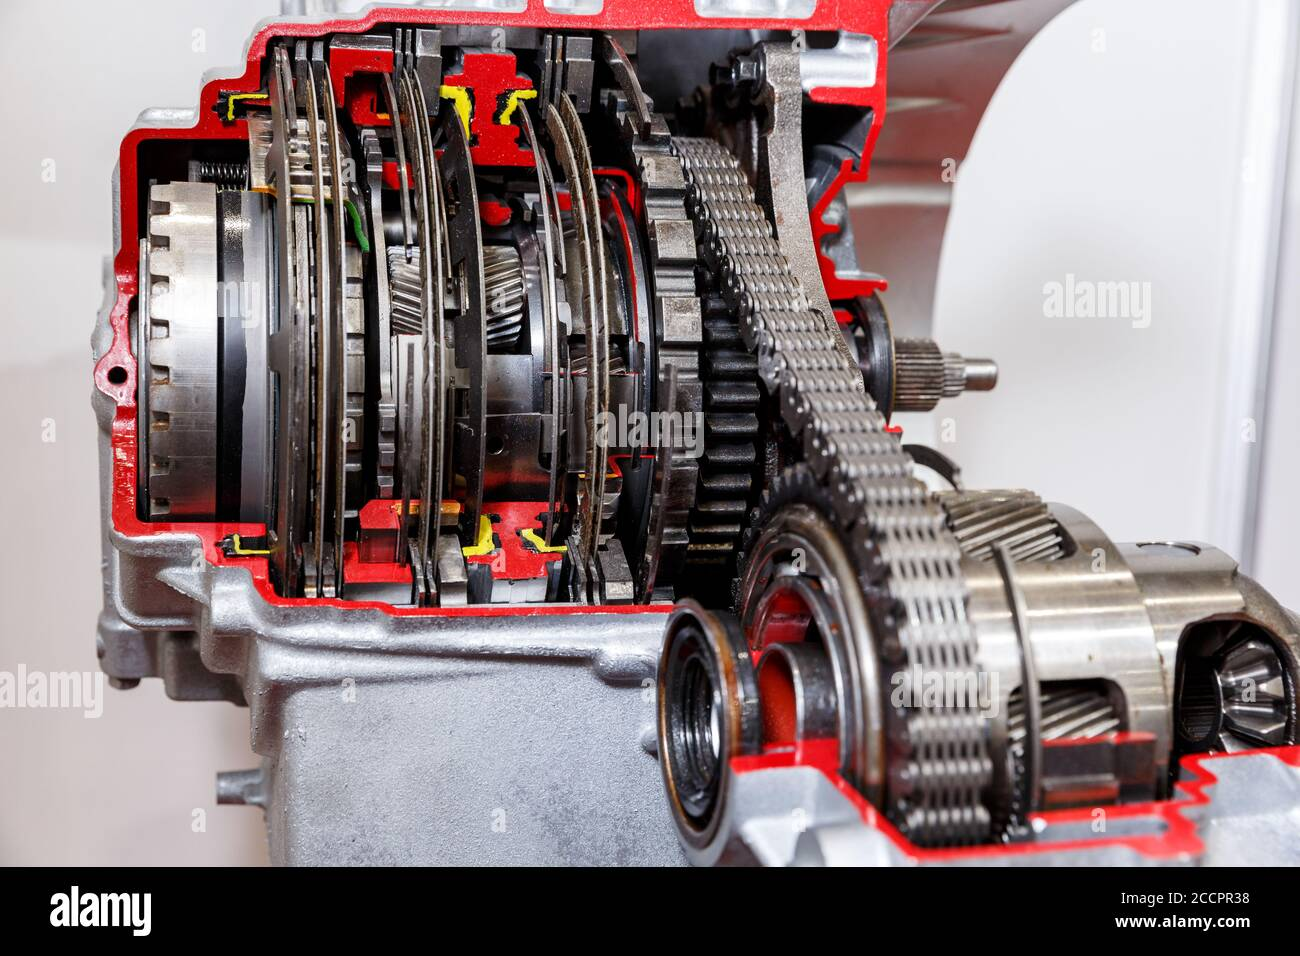 Automatic Car Transmission Cutaway Presented On A Exibition Stand Stock Photo Alamy